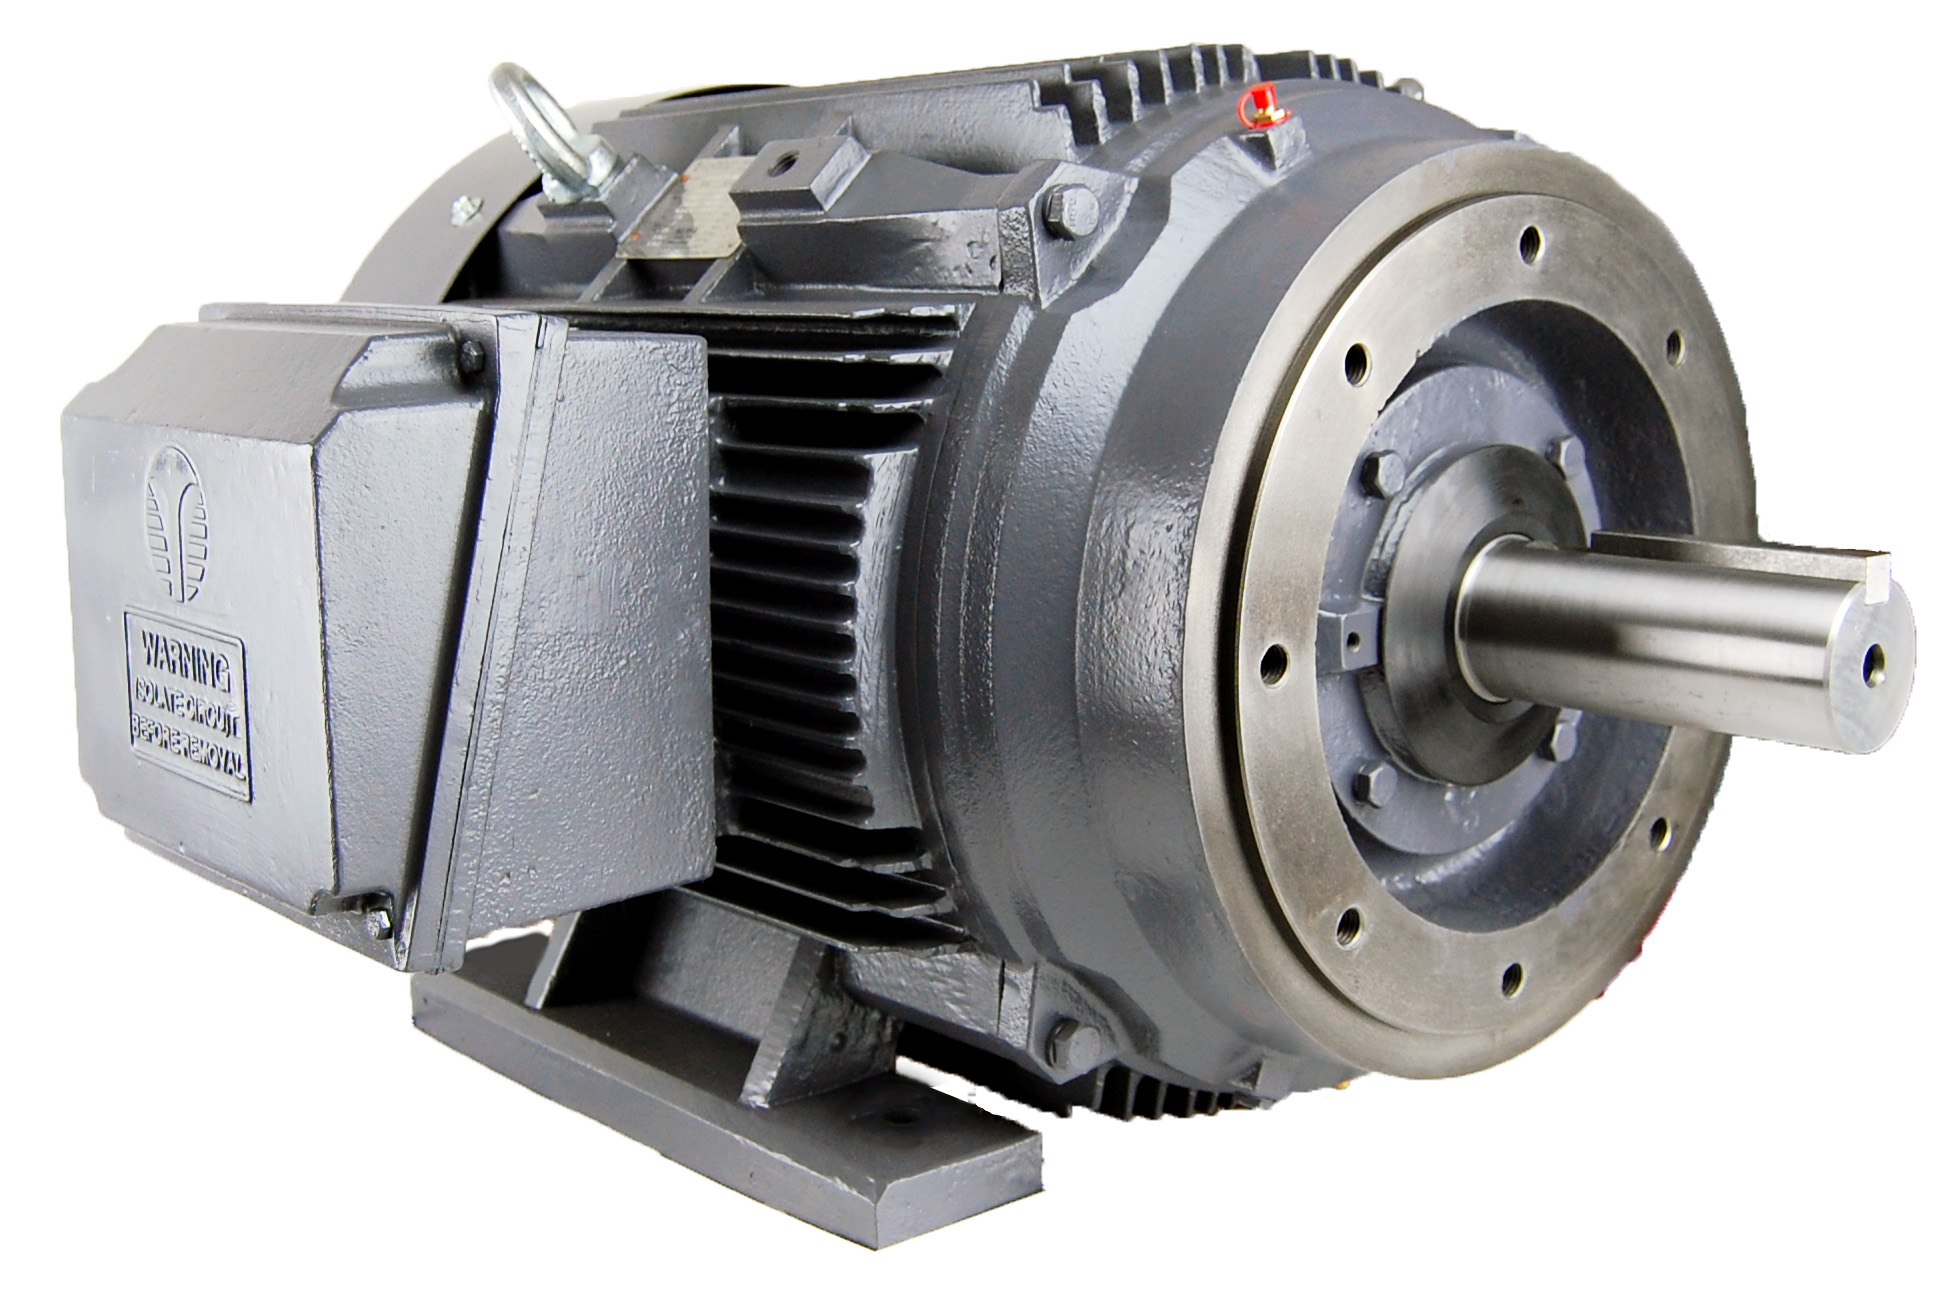 GR3-CI-TF-143TC-2-B-D-1 TechTop PREMIUM EFFICIENCY,3 PHASE CAST IRON,TEFC,143 FRAME, C-Flange, 3600RPM,BALL BEARING, 208-230/460V,1HP, Removable Feet